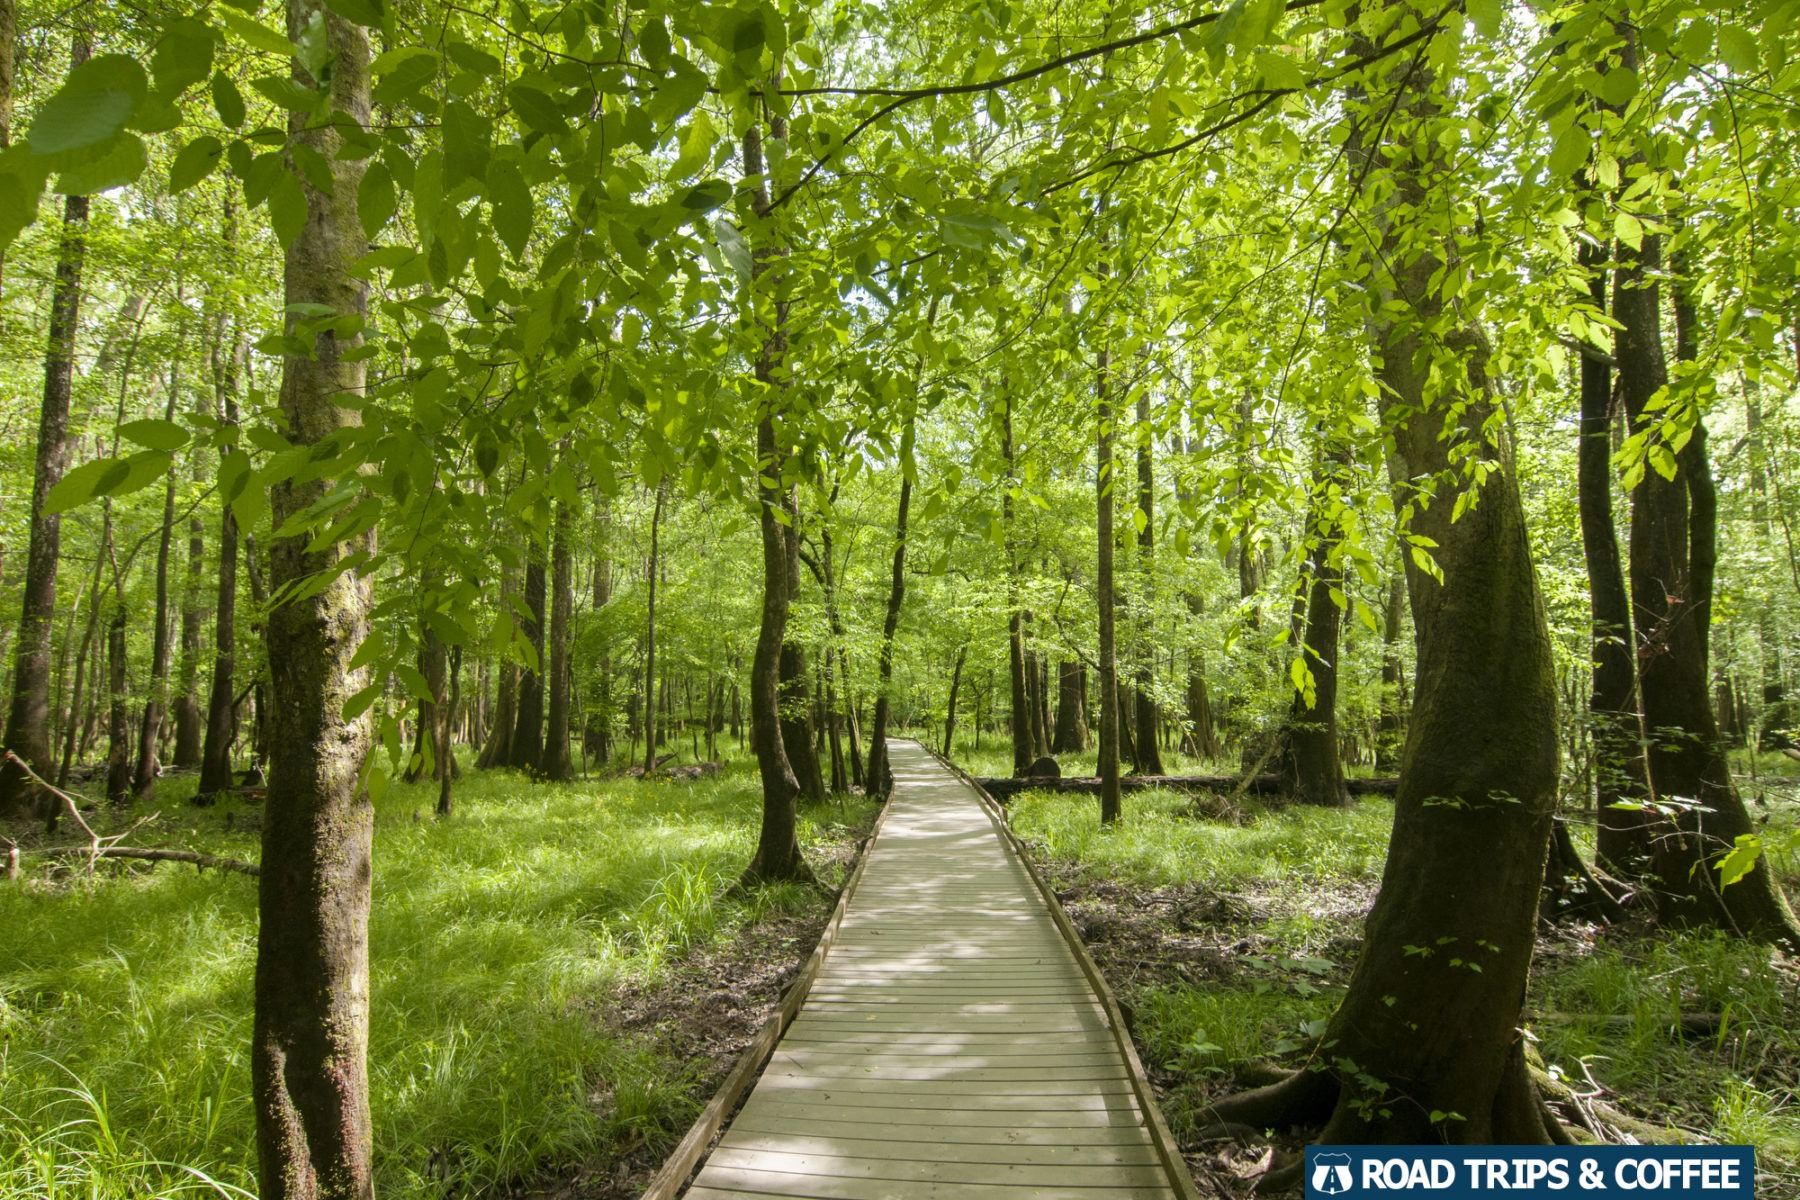 A long wooden boardwalk trails off into the distance surrounded by towering green trees at Congaree National Park in South Carolina